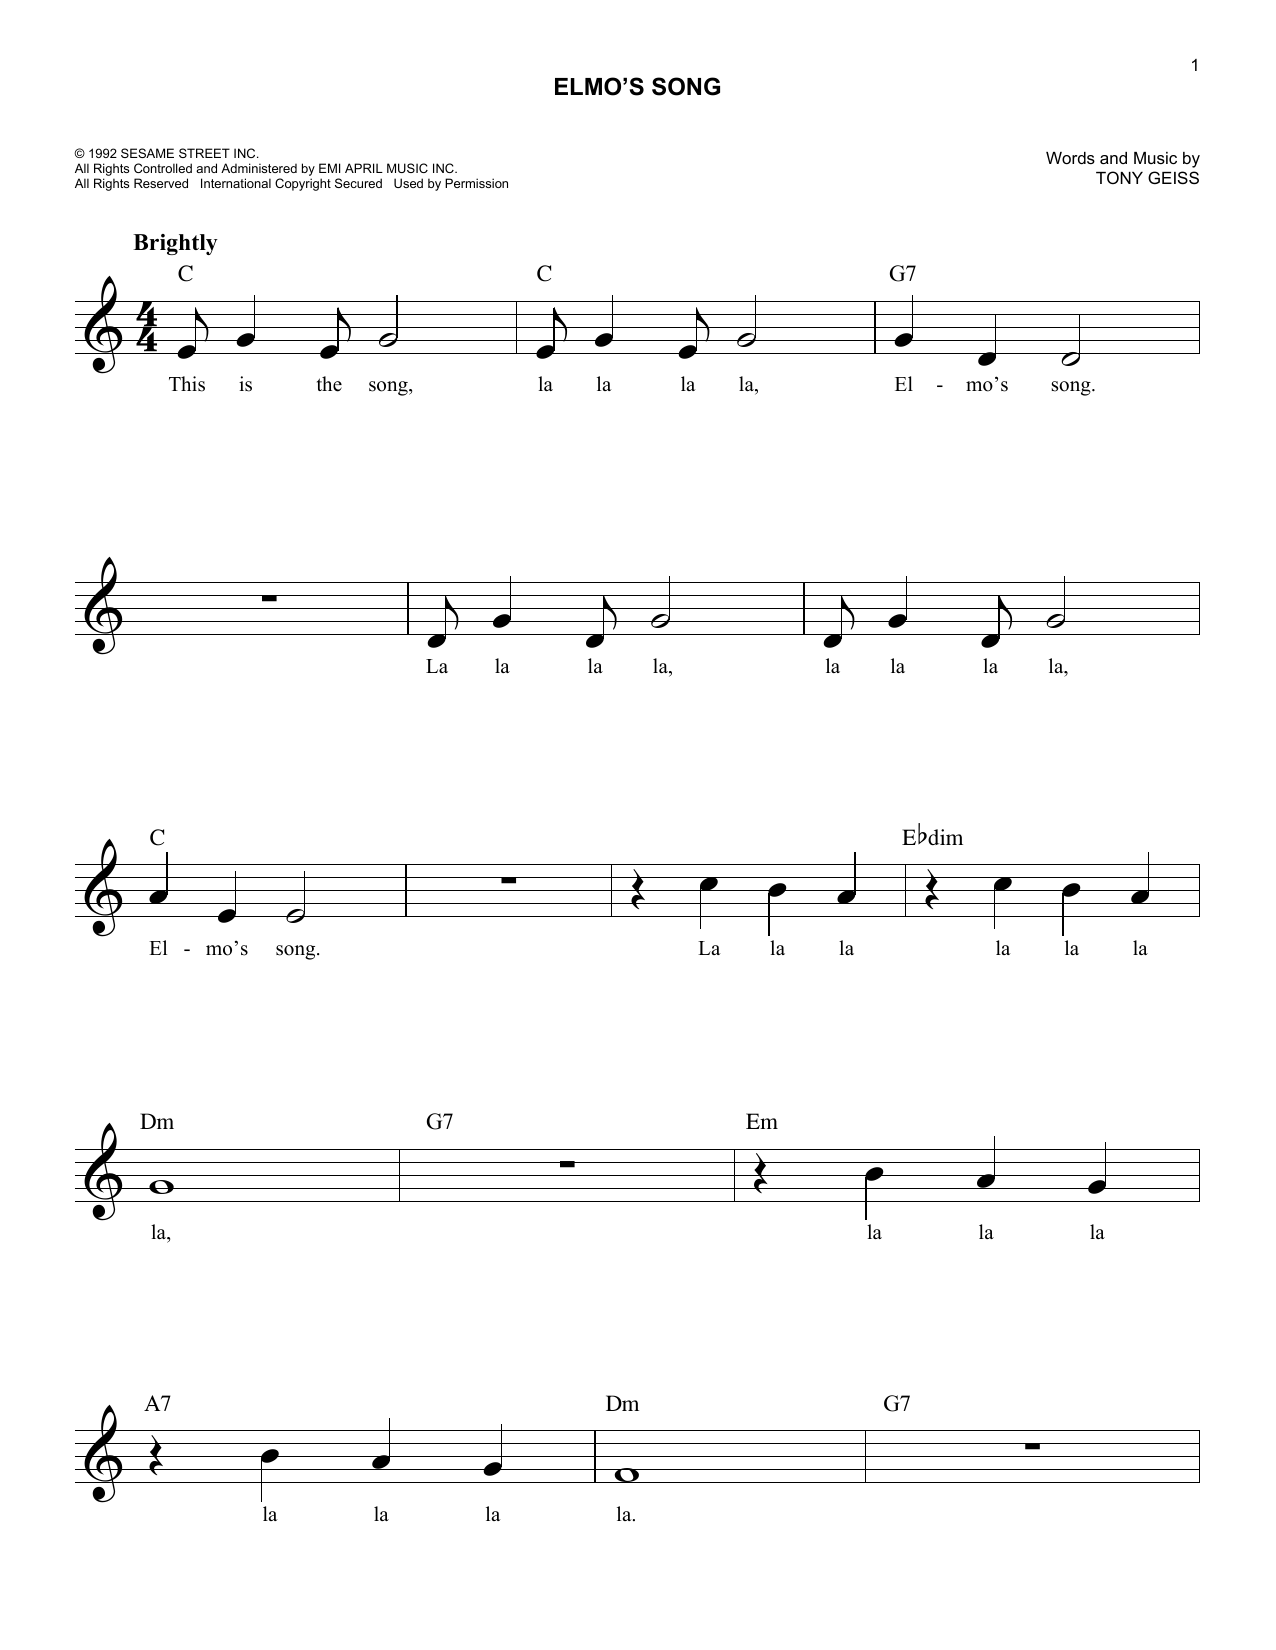 Elmo's Song Sheet Music